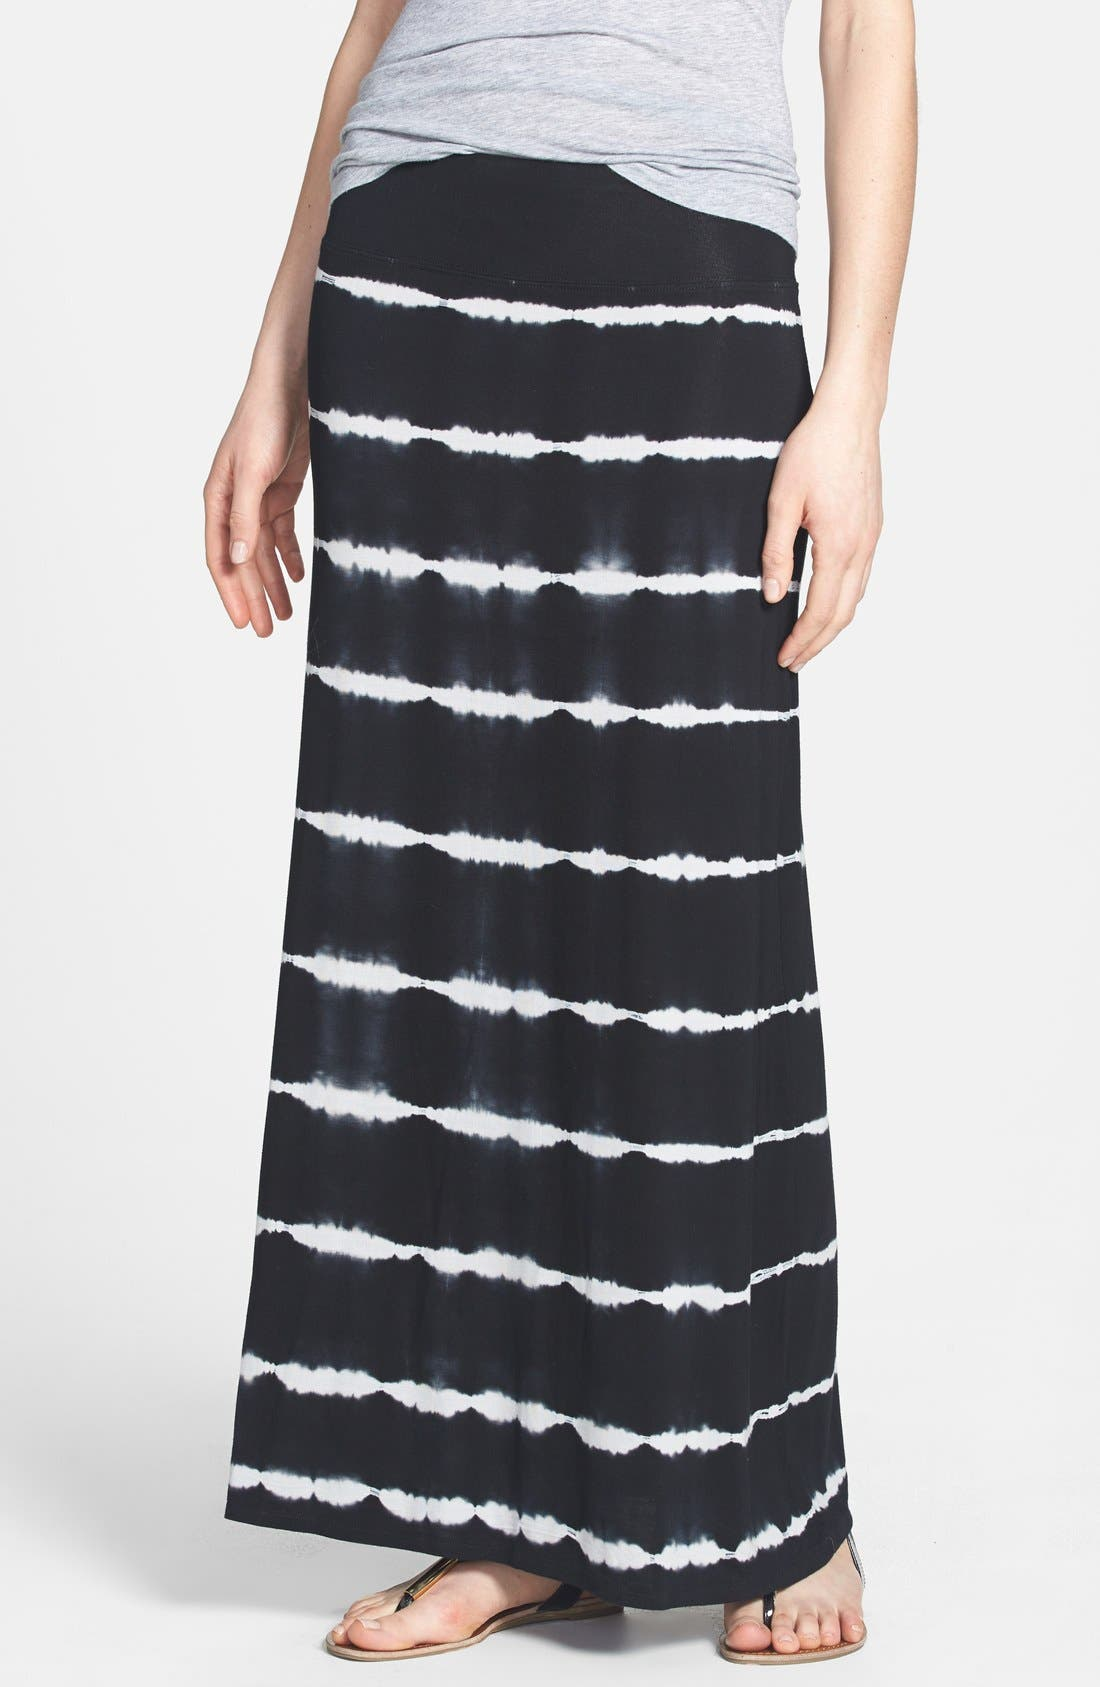 Main Image - kensie Tie Dye Stretch Knit Maxi Skirt